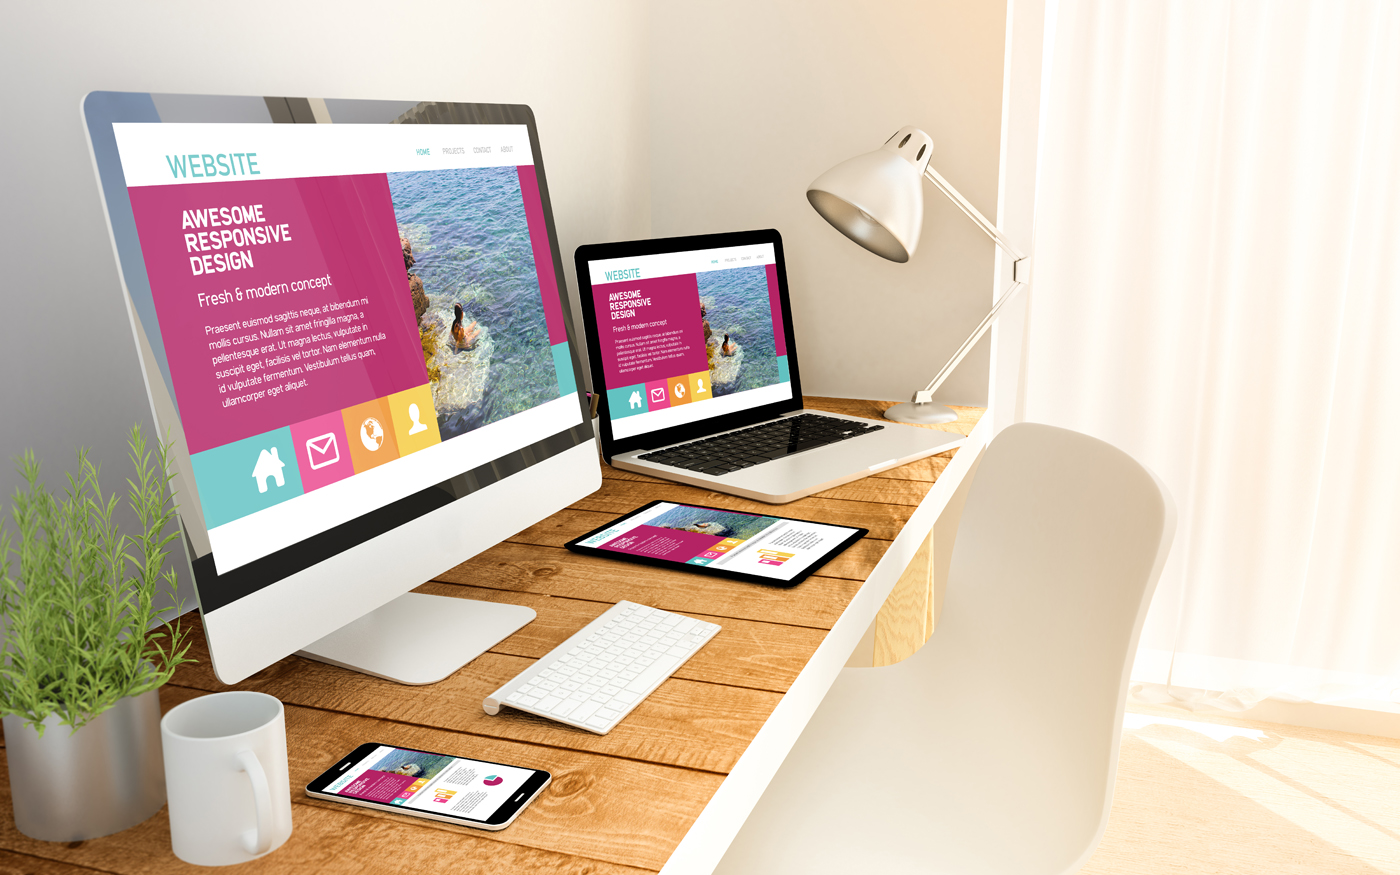 Category Web Design Development Miami Fort Lauderdale Florida High Powered Graphics